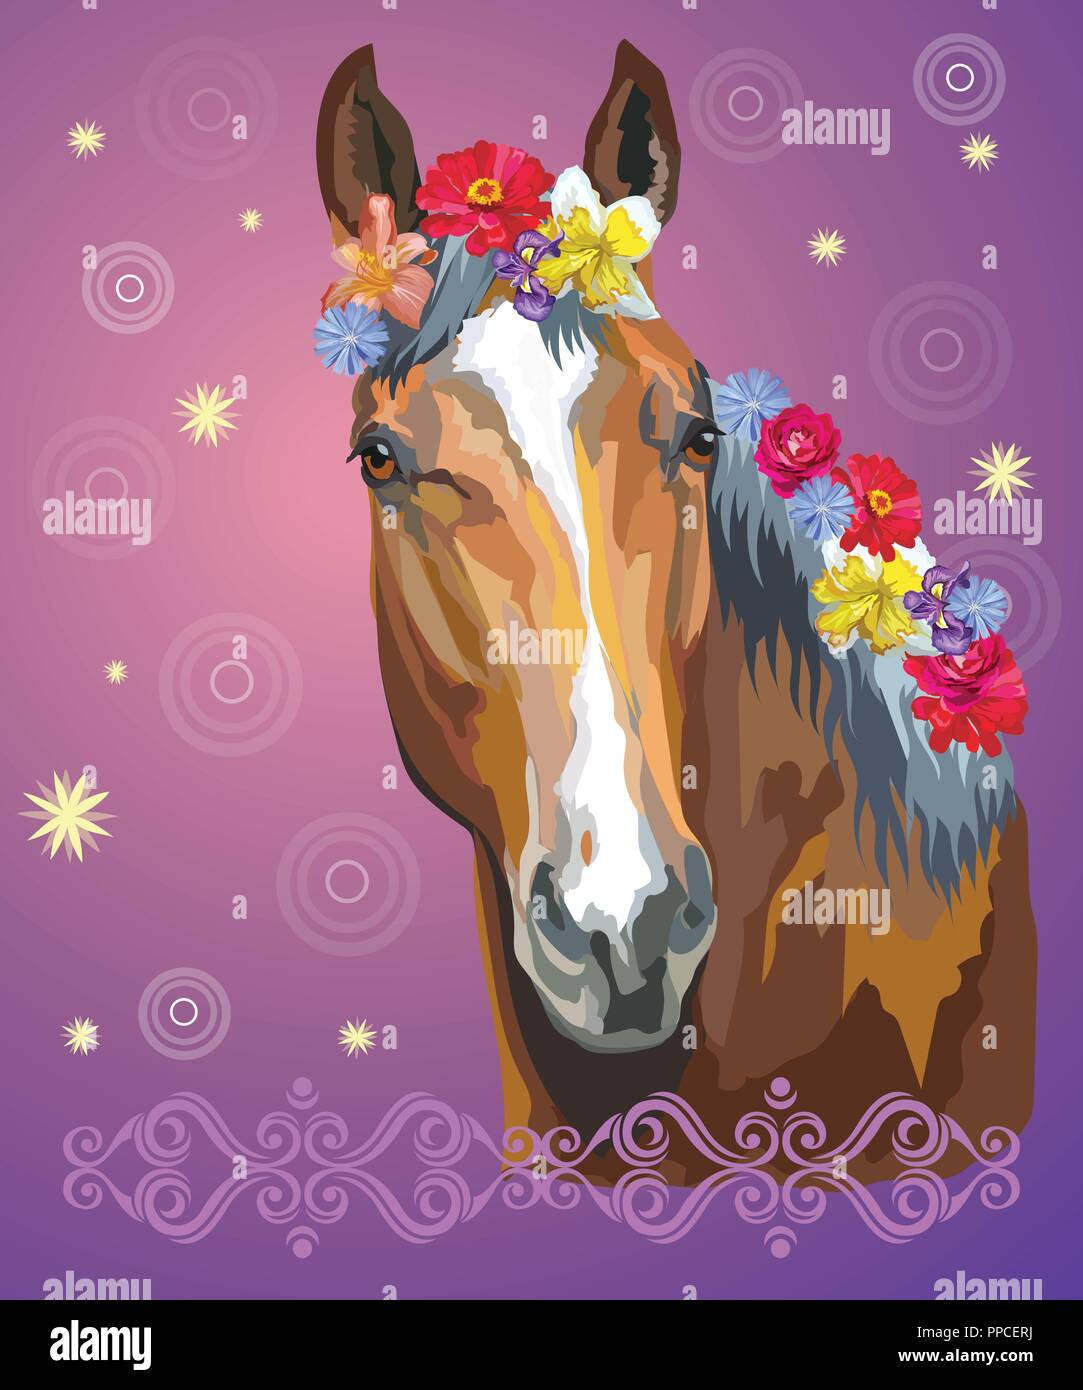 Vector colorful illustration. Portrait of bay horse with different flowers in mane isolated on purple gradient background with decorative ornament and - Stock Vector